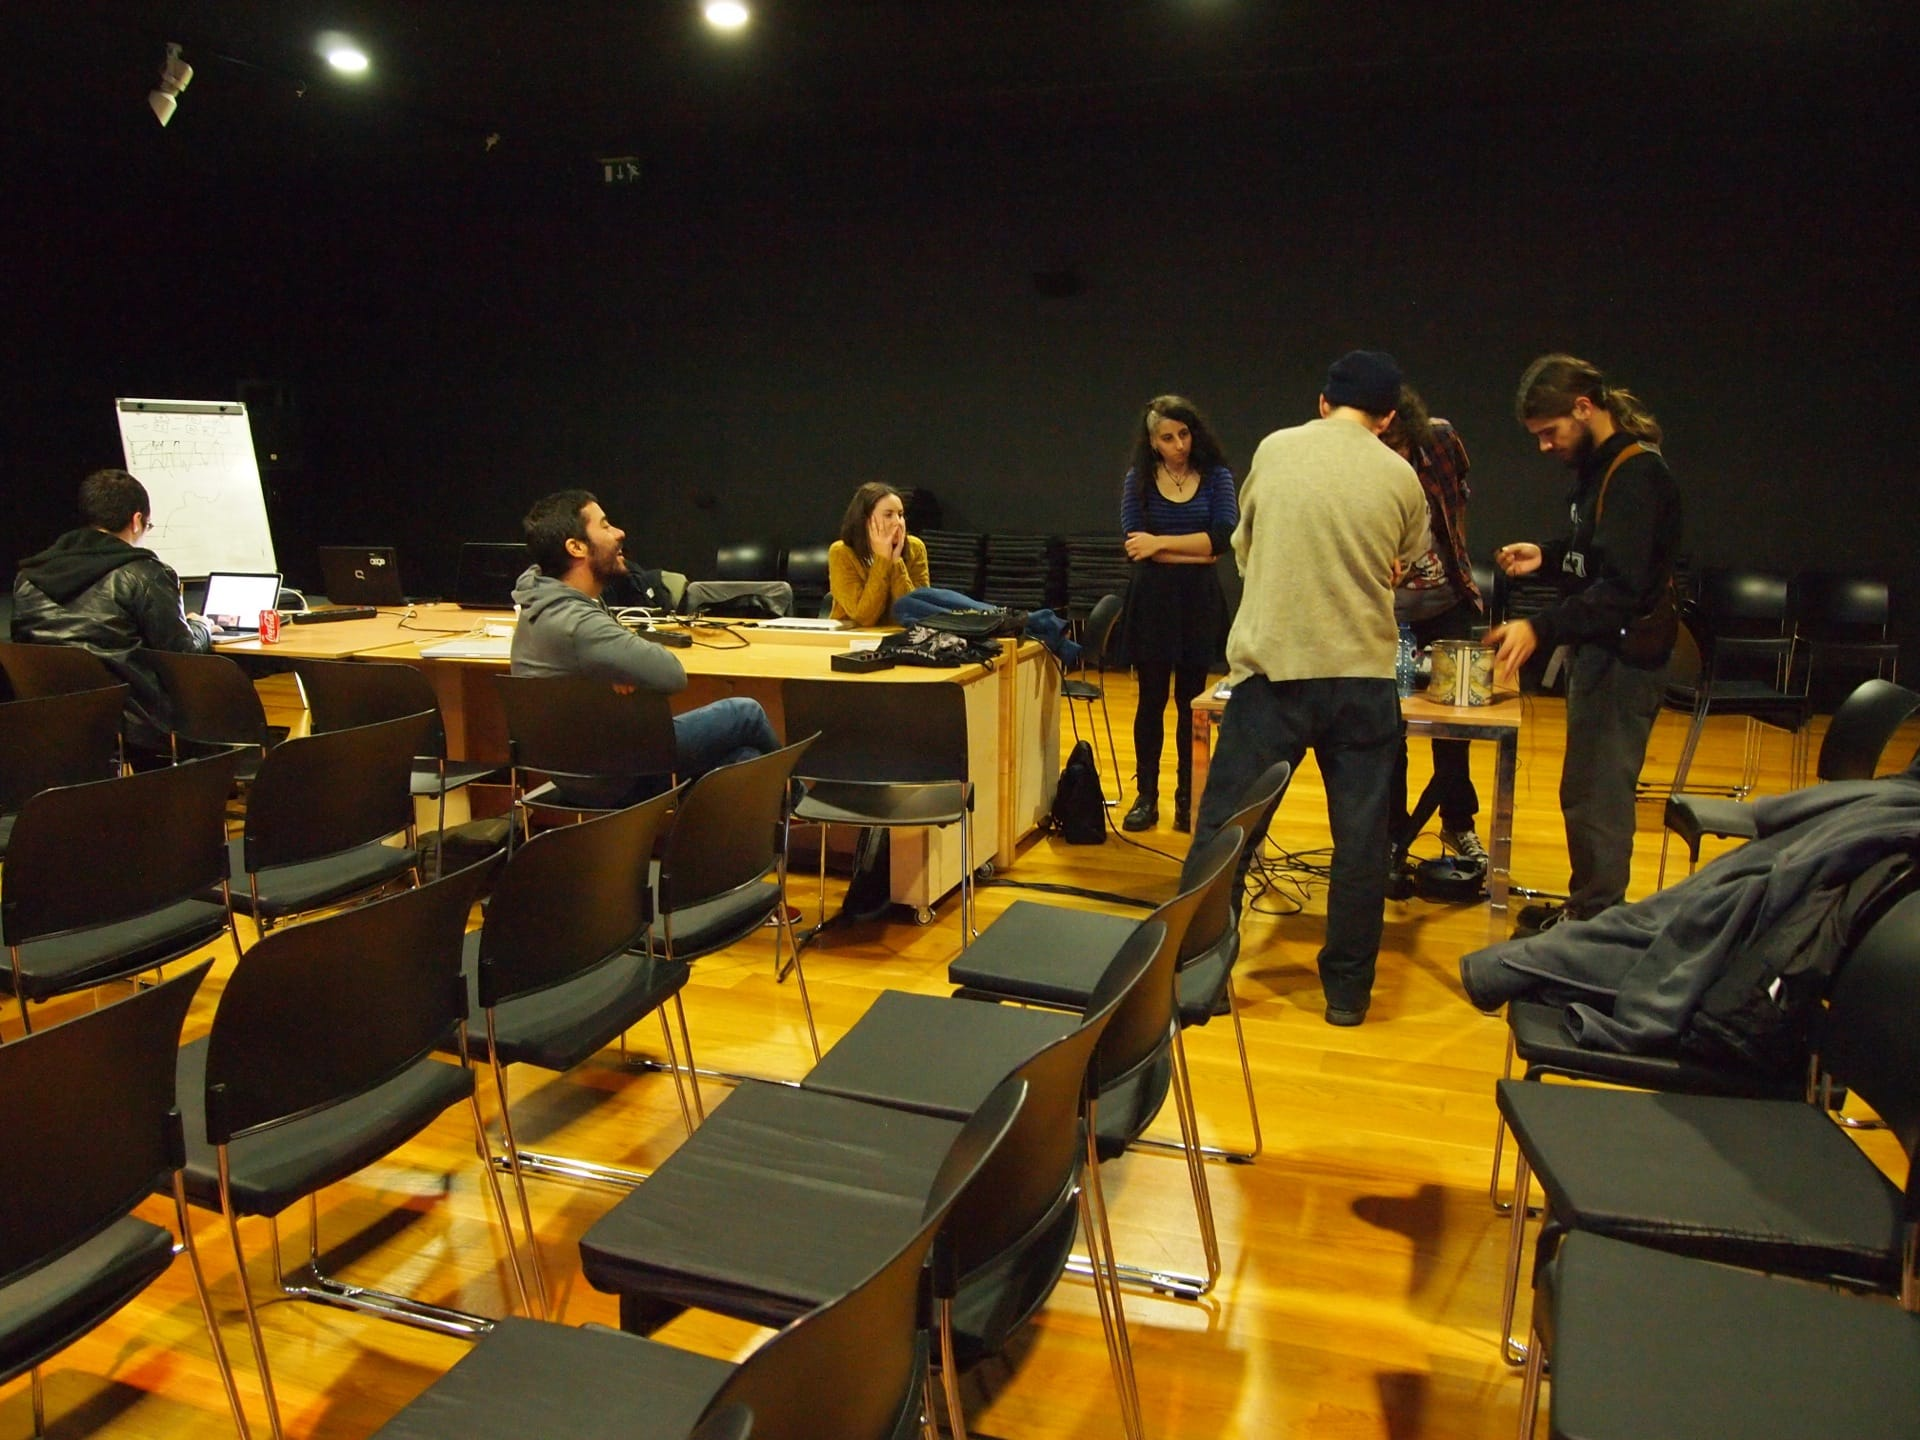 Feedback workshop @ MARCO Vigo by Stelios Manousakis (2014)